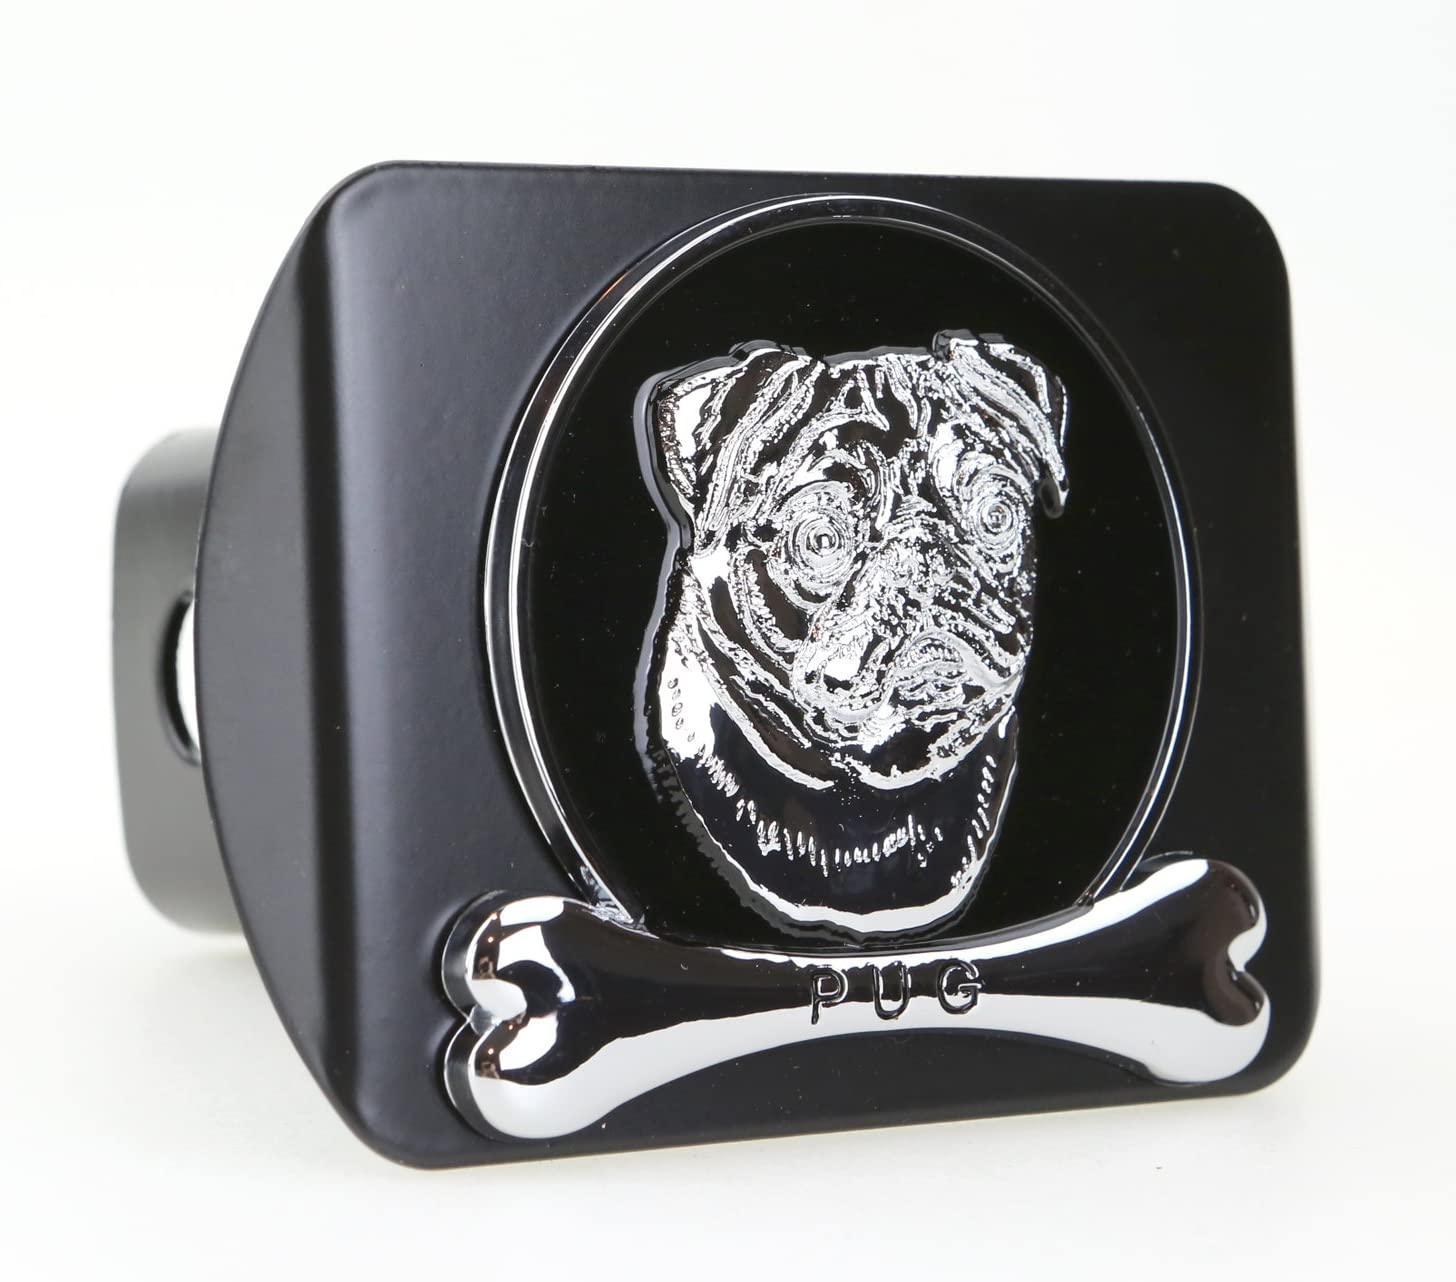 Fits 2 Receivers, Chrome Dog eVerHITCH Chrome Metal Embossed Emblem on Metal Trailer Hitch Cover